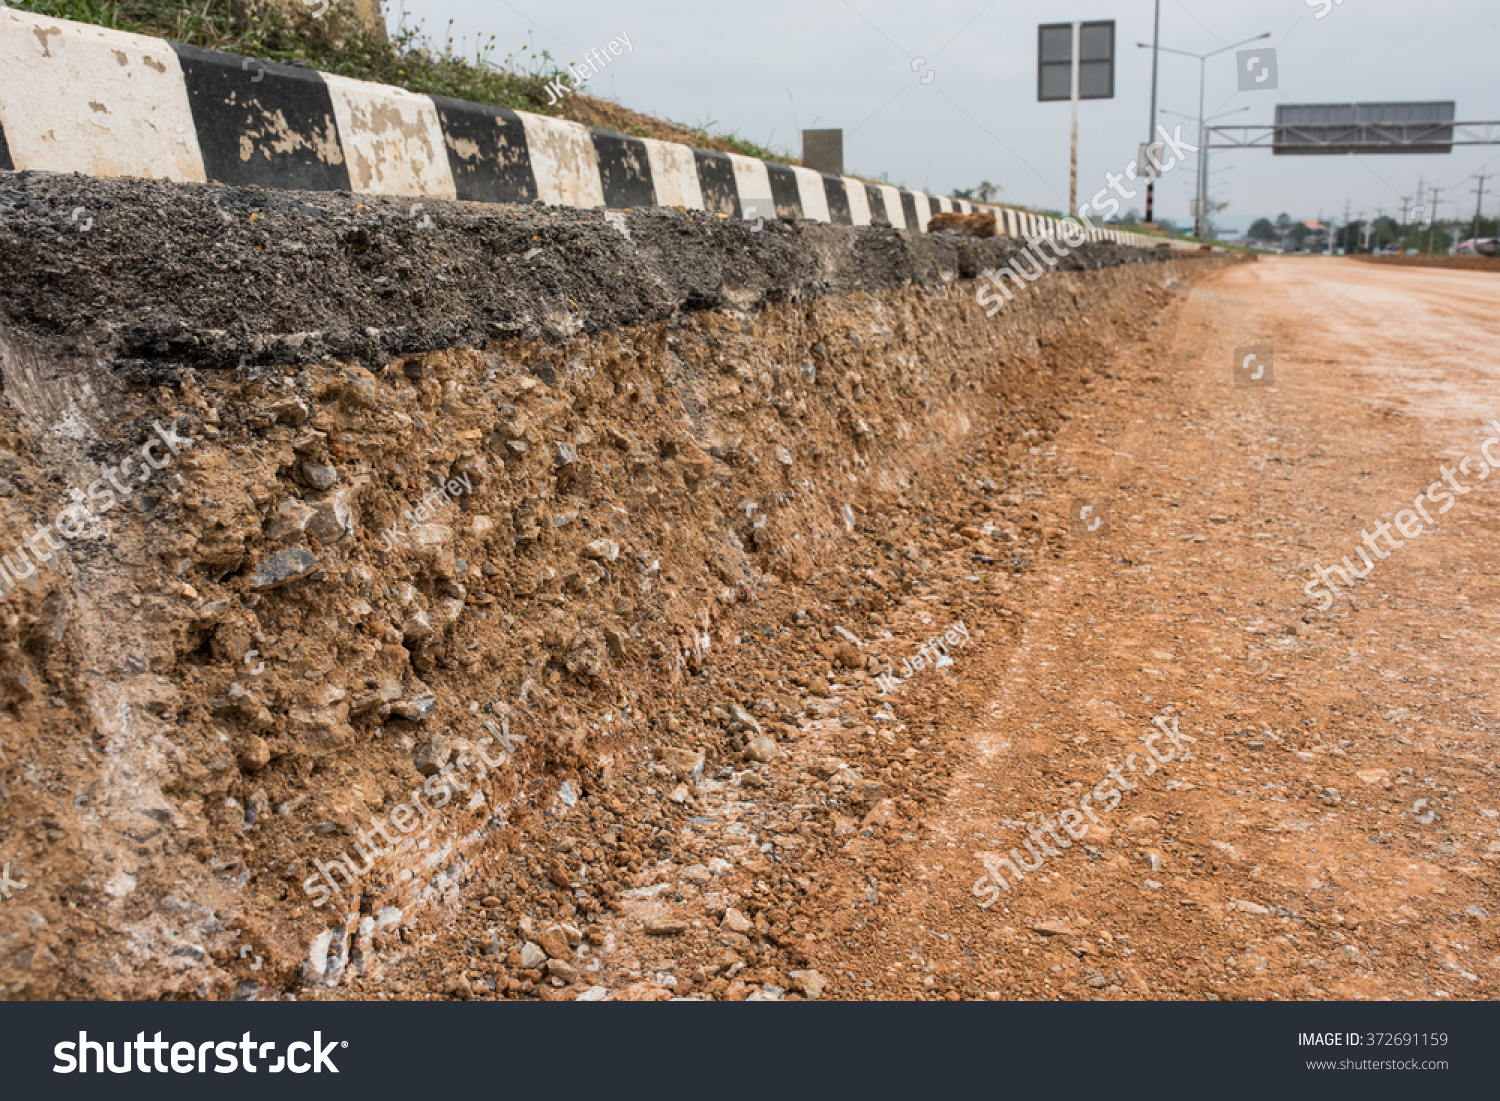 Soil aggregate sub base shall consist stock photo for Minerals present in soil